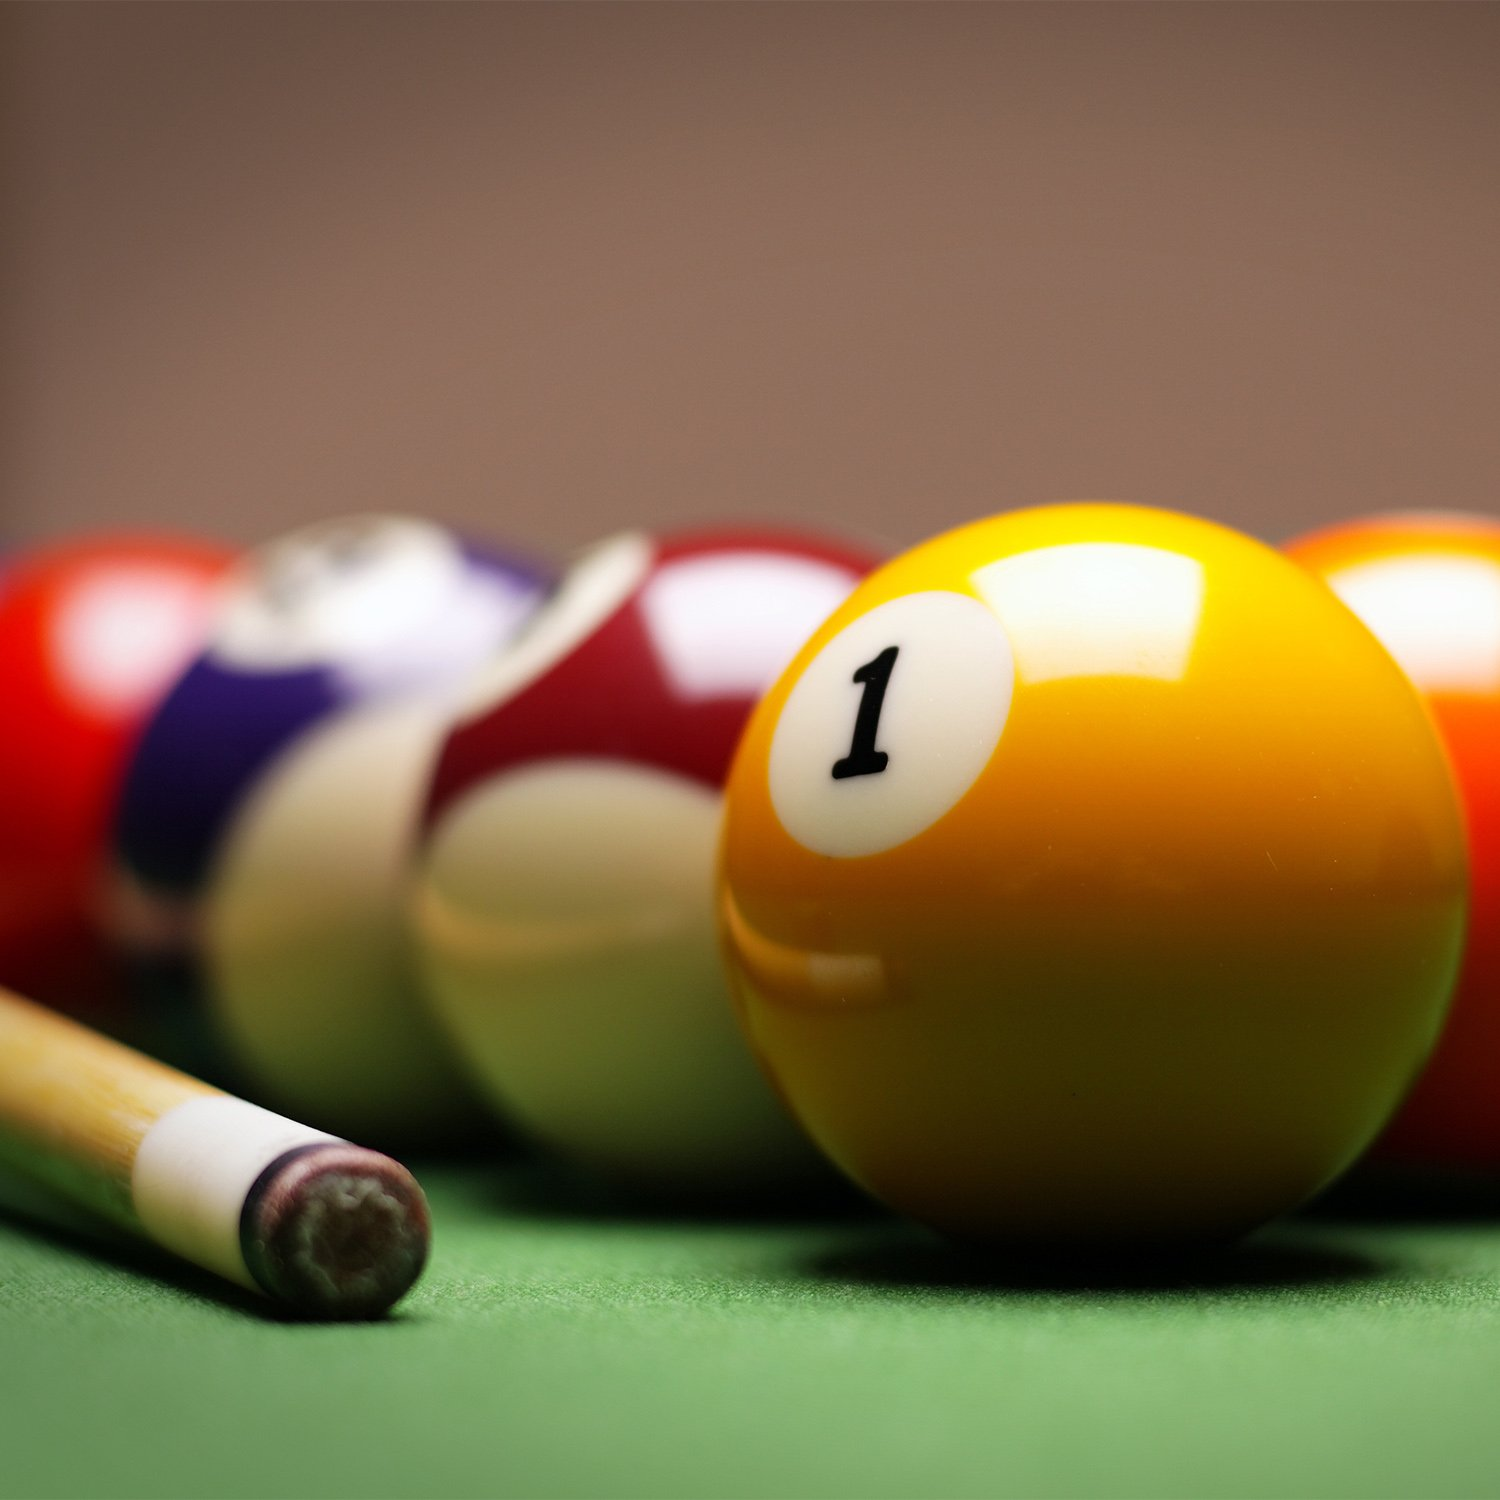 Best Cue Tips